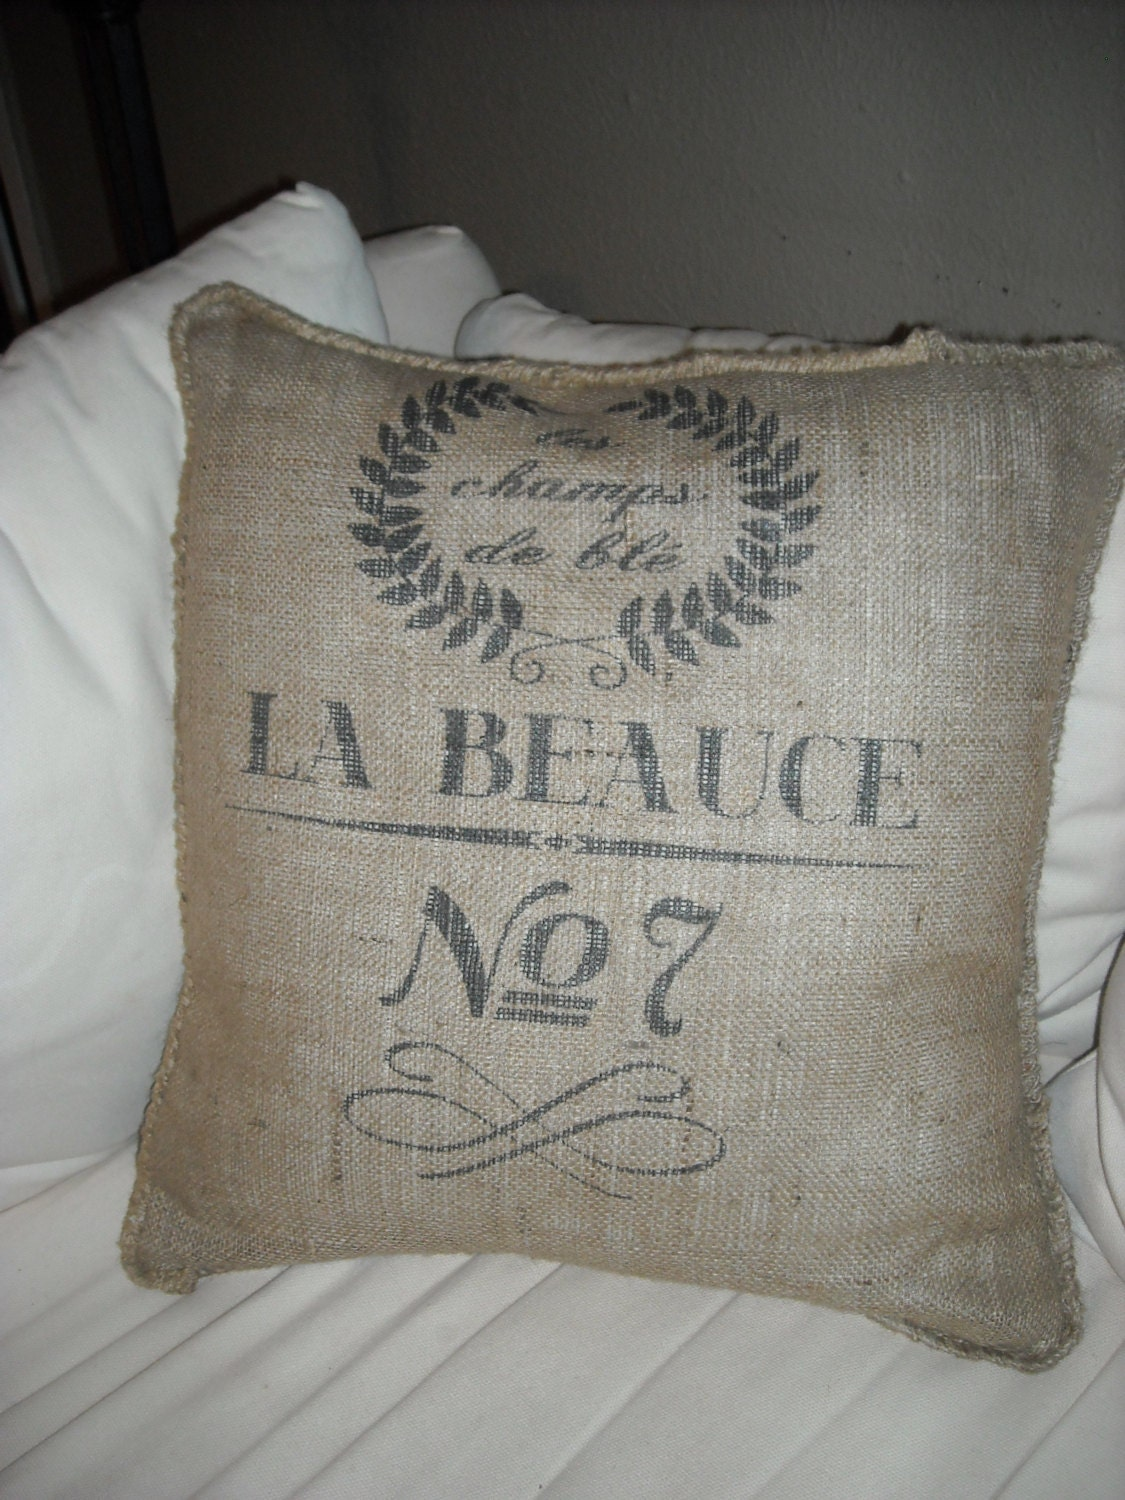 Burlap Throw Pillows Etsy : Decorative burlap throw pillow by PeytonsFaves on Etsy